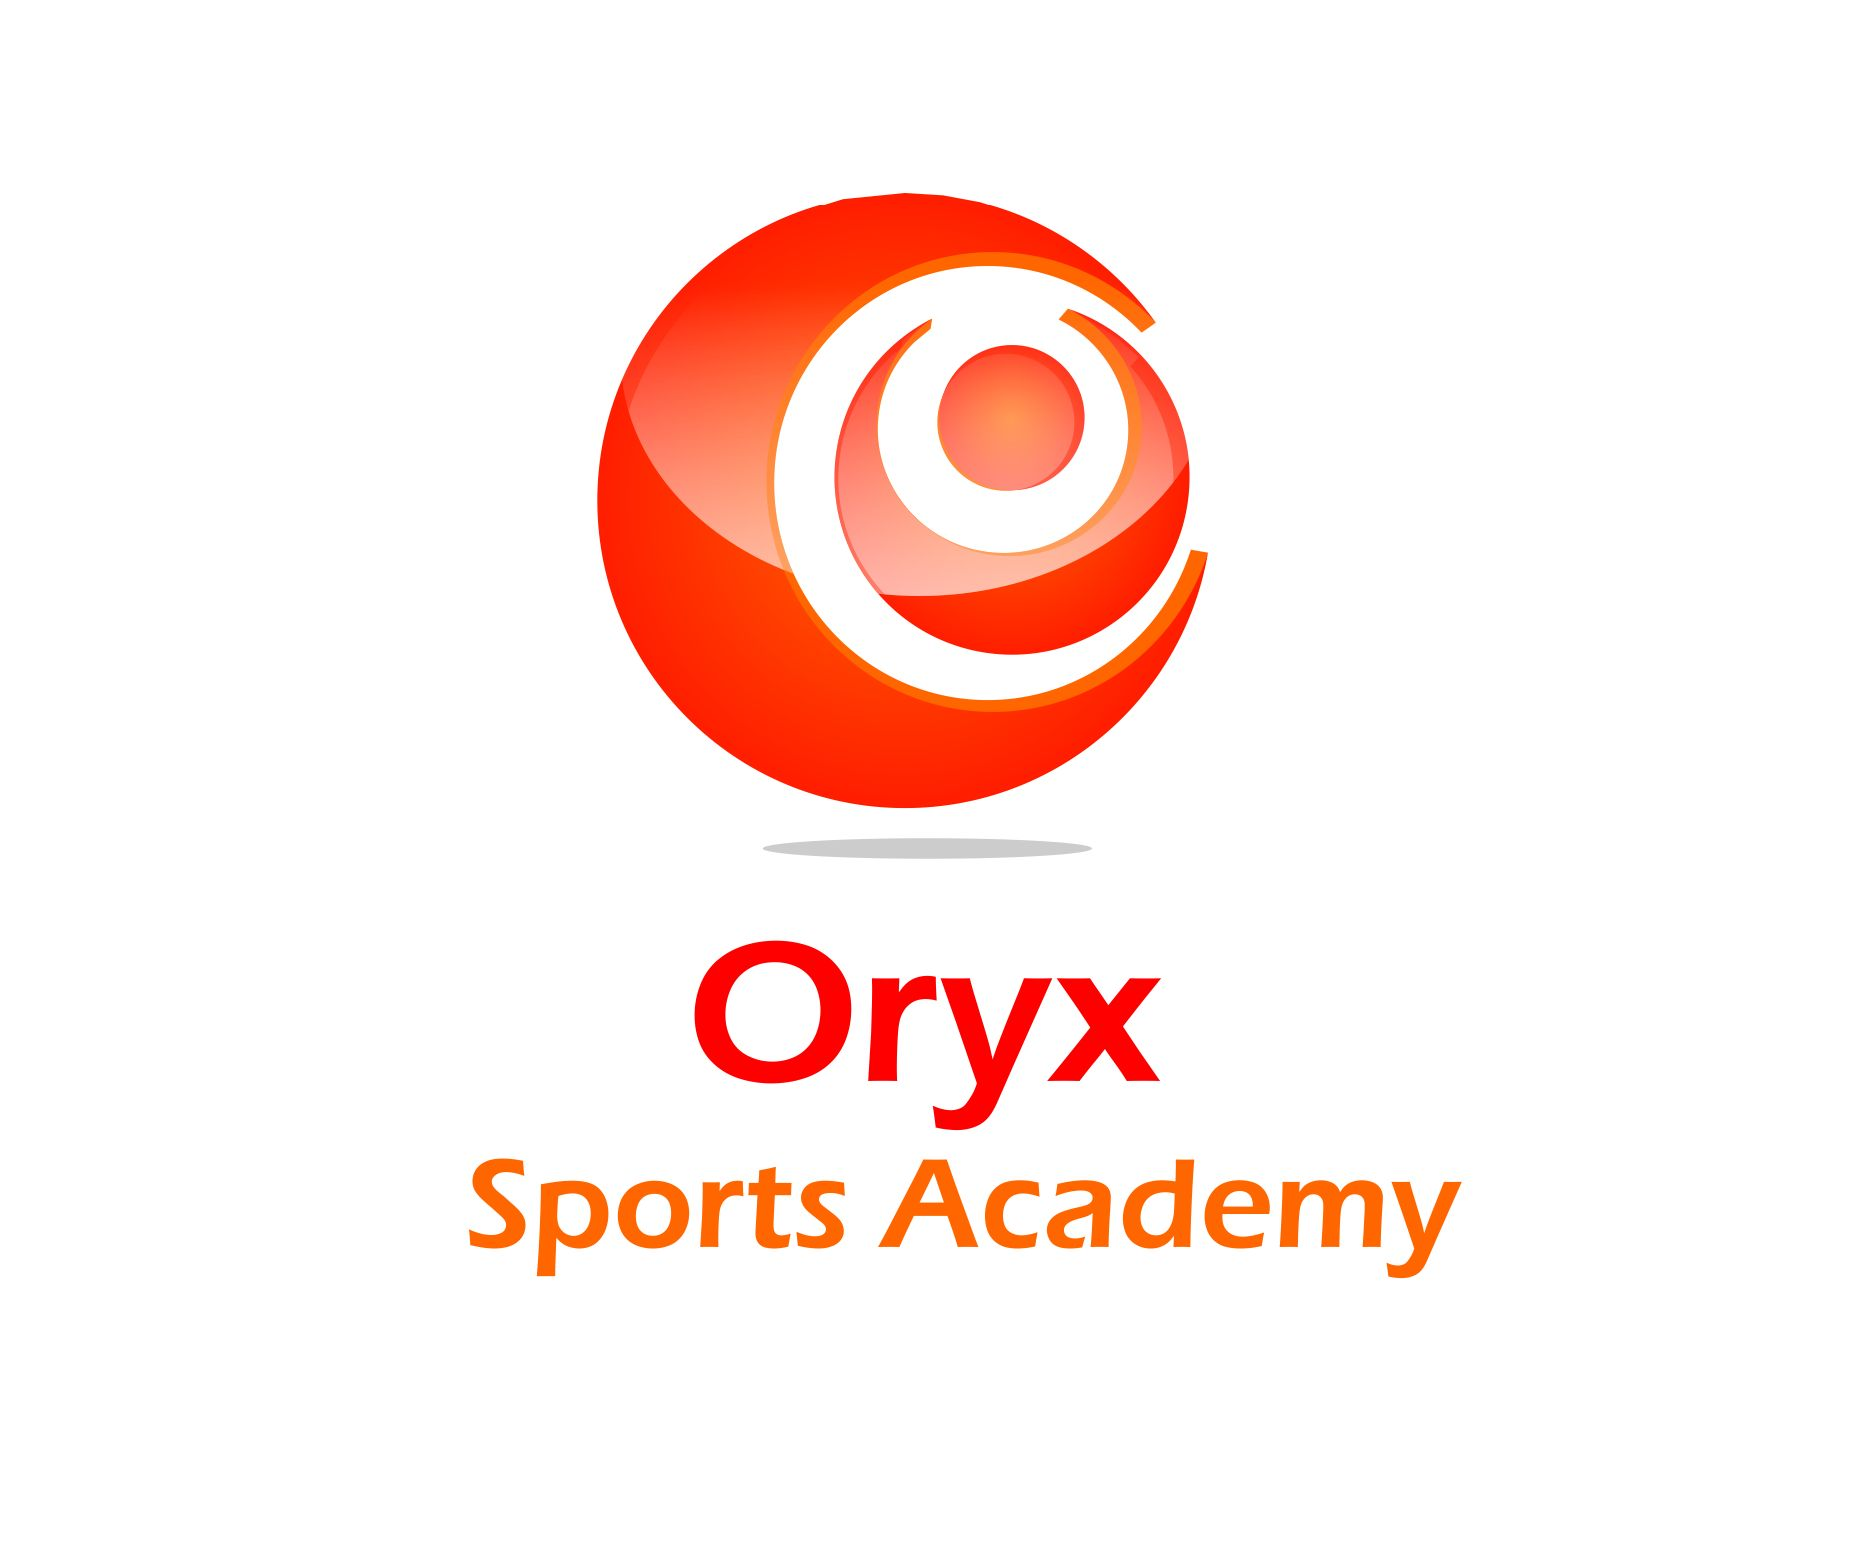 Logo Design by Choirul Jcd - Entry No. 56 in the Logo Design Contest New Logo Design for Oryx Sports Academy.